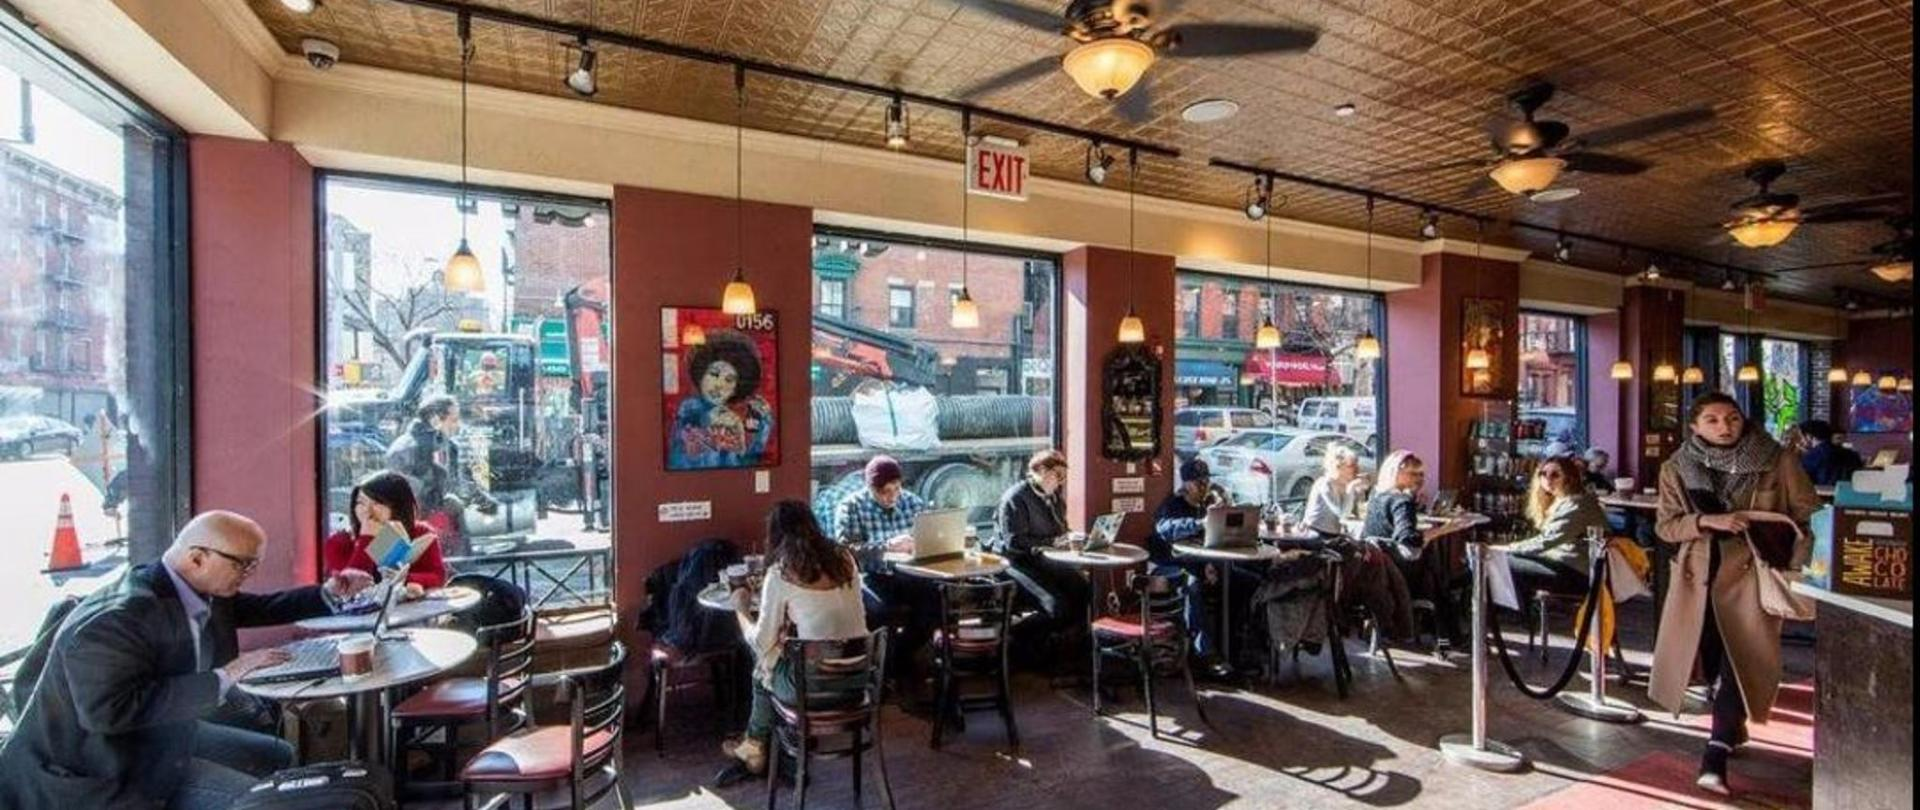 EAST VILLAGE HOTEL NEW YORK - CAFE